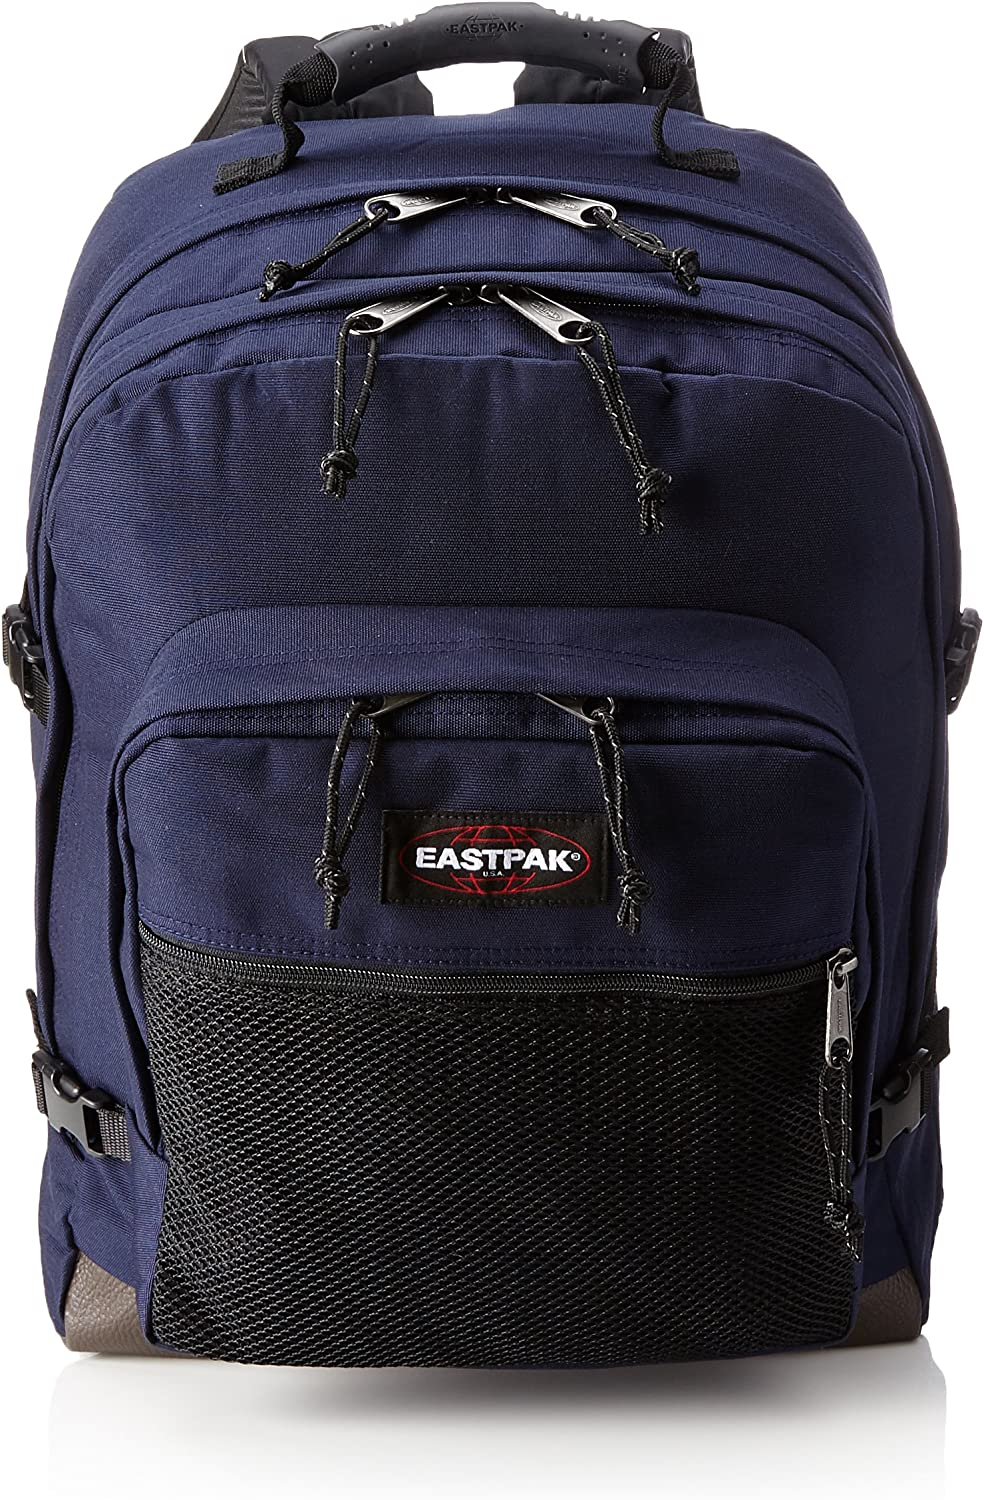 Sac à dos Eastpak Ultimate Knit Grey 2 compartiments